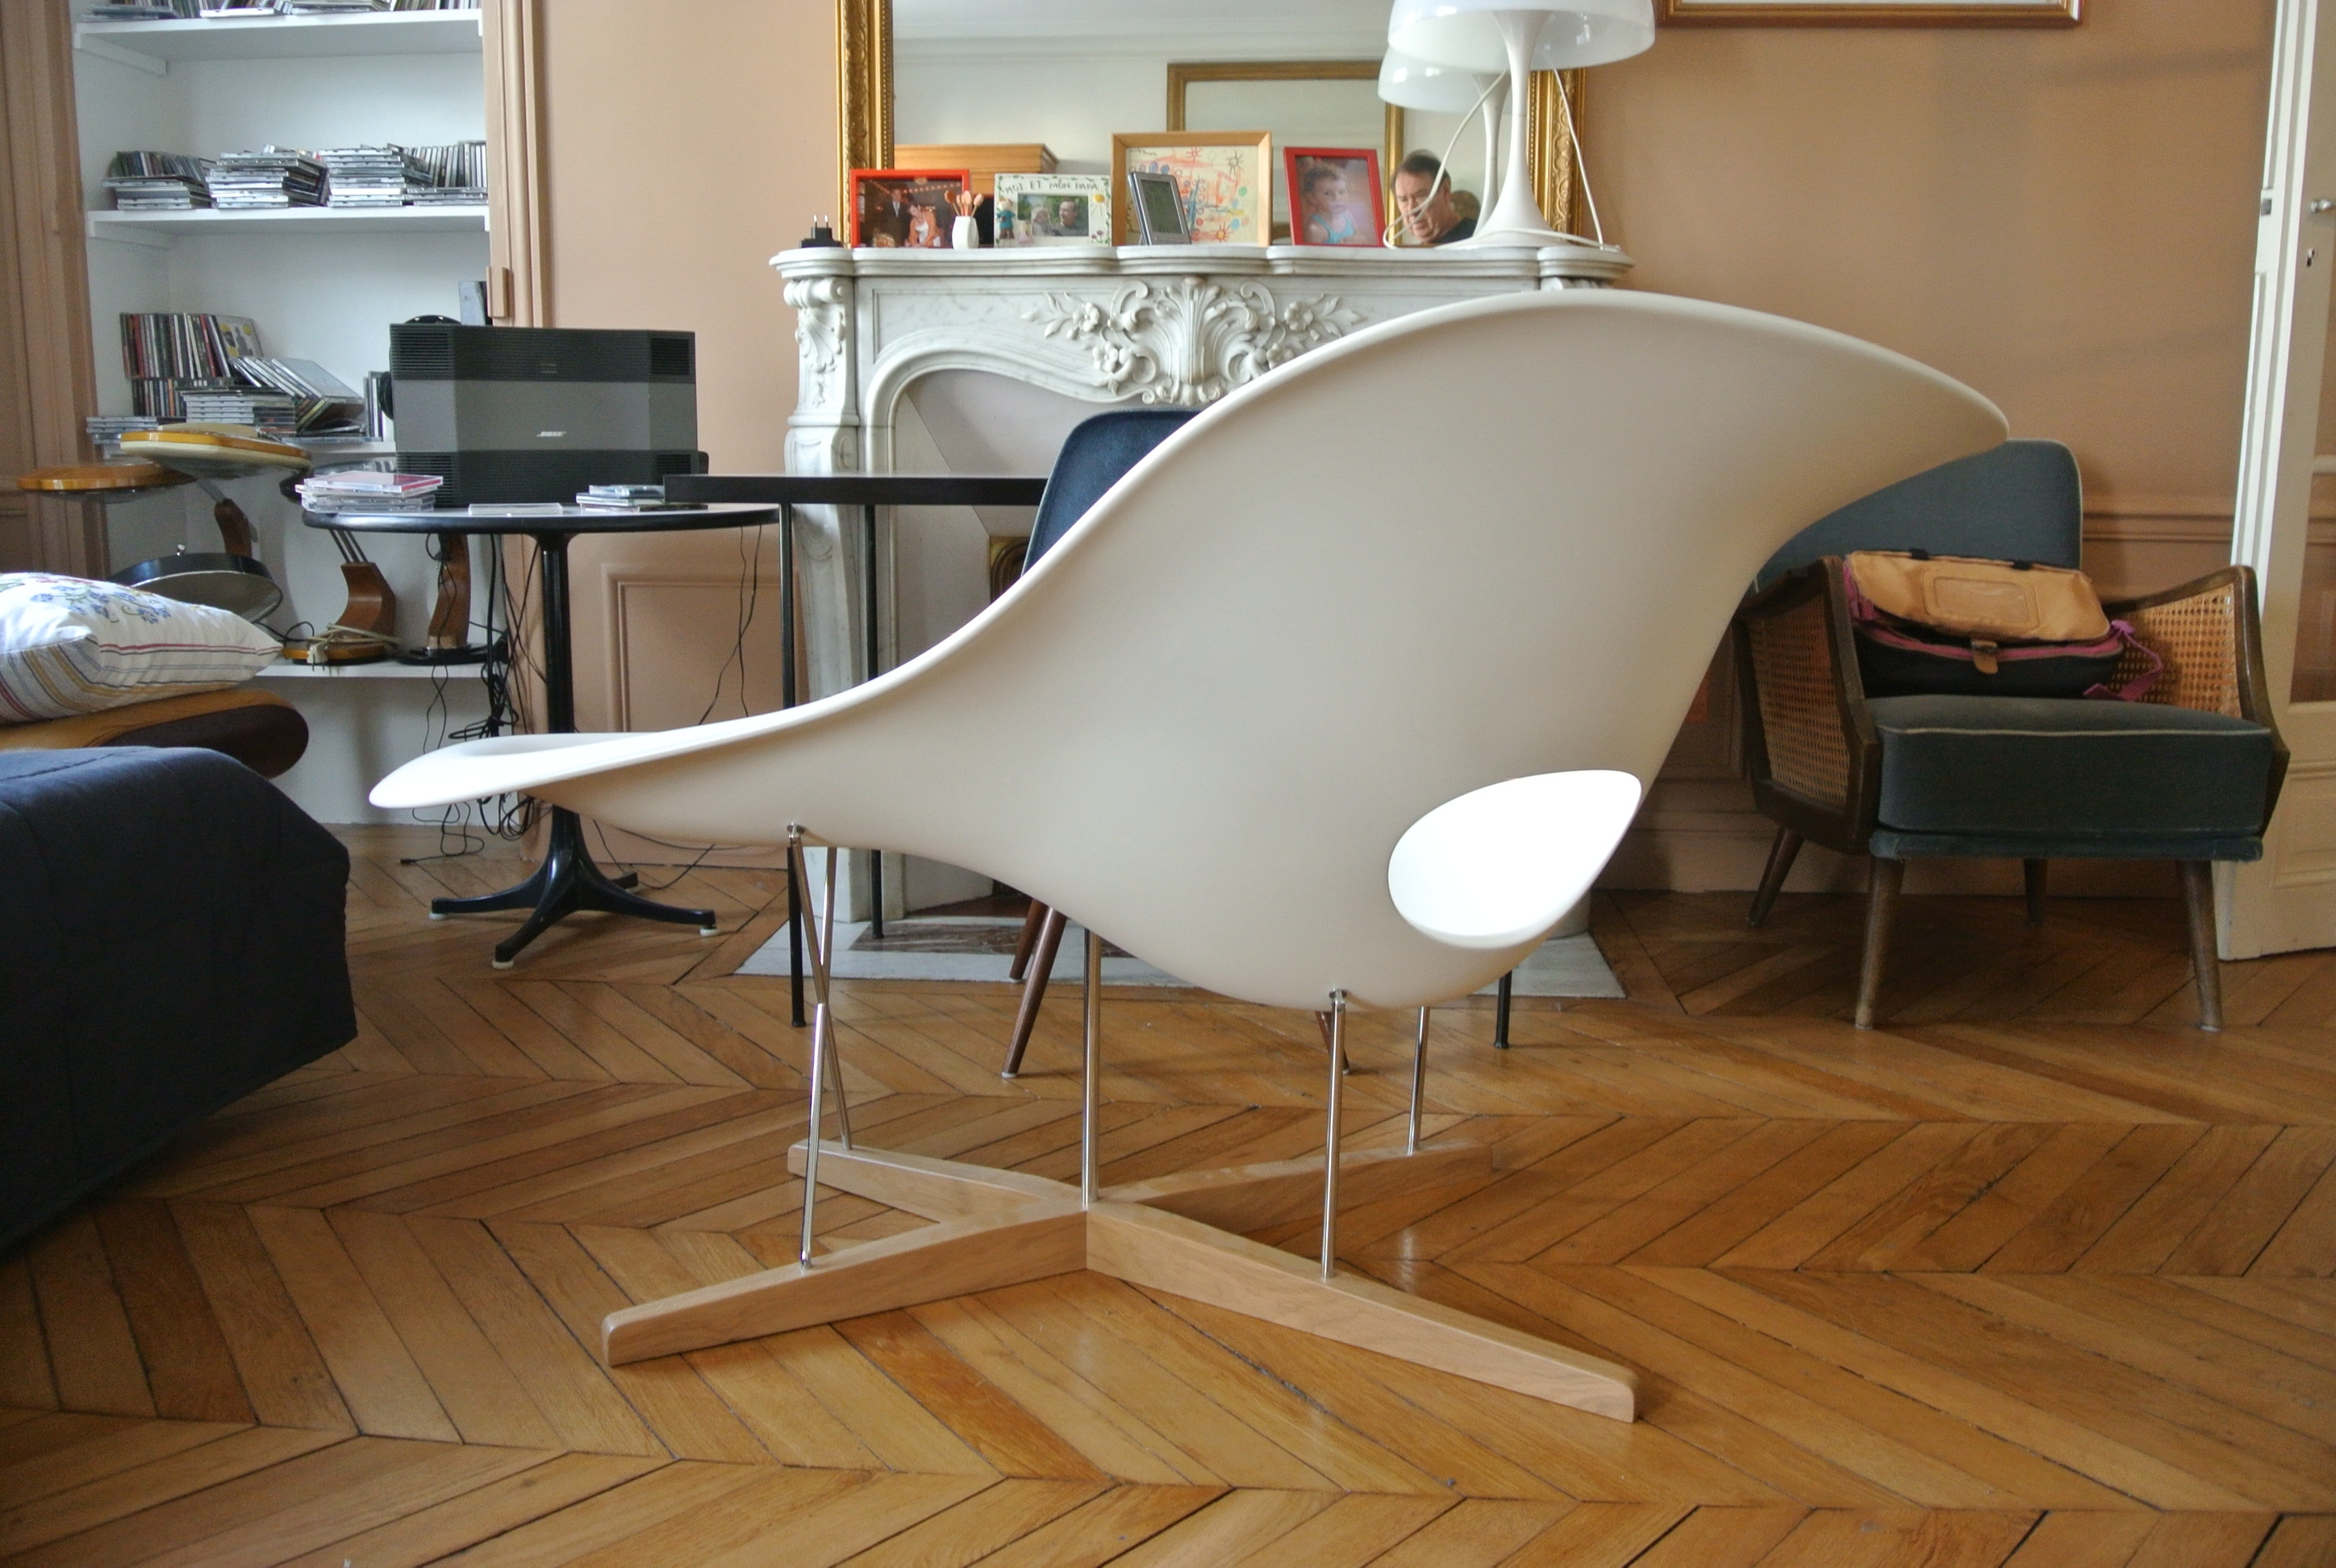 Chaise eames vitra chaises eames vitra chaise daw 6 for 4 chaises eames